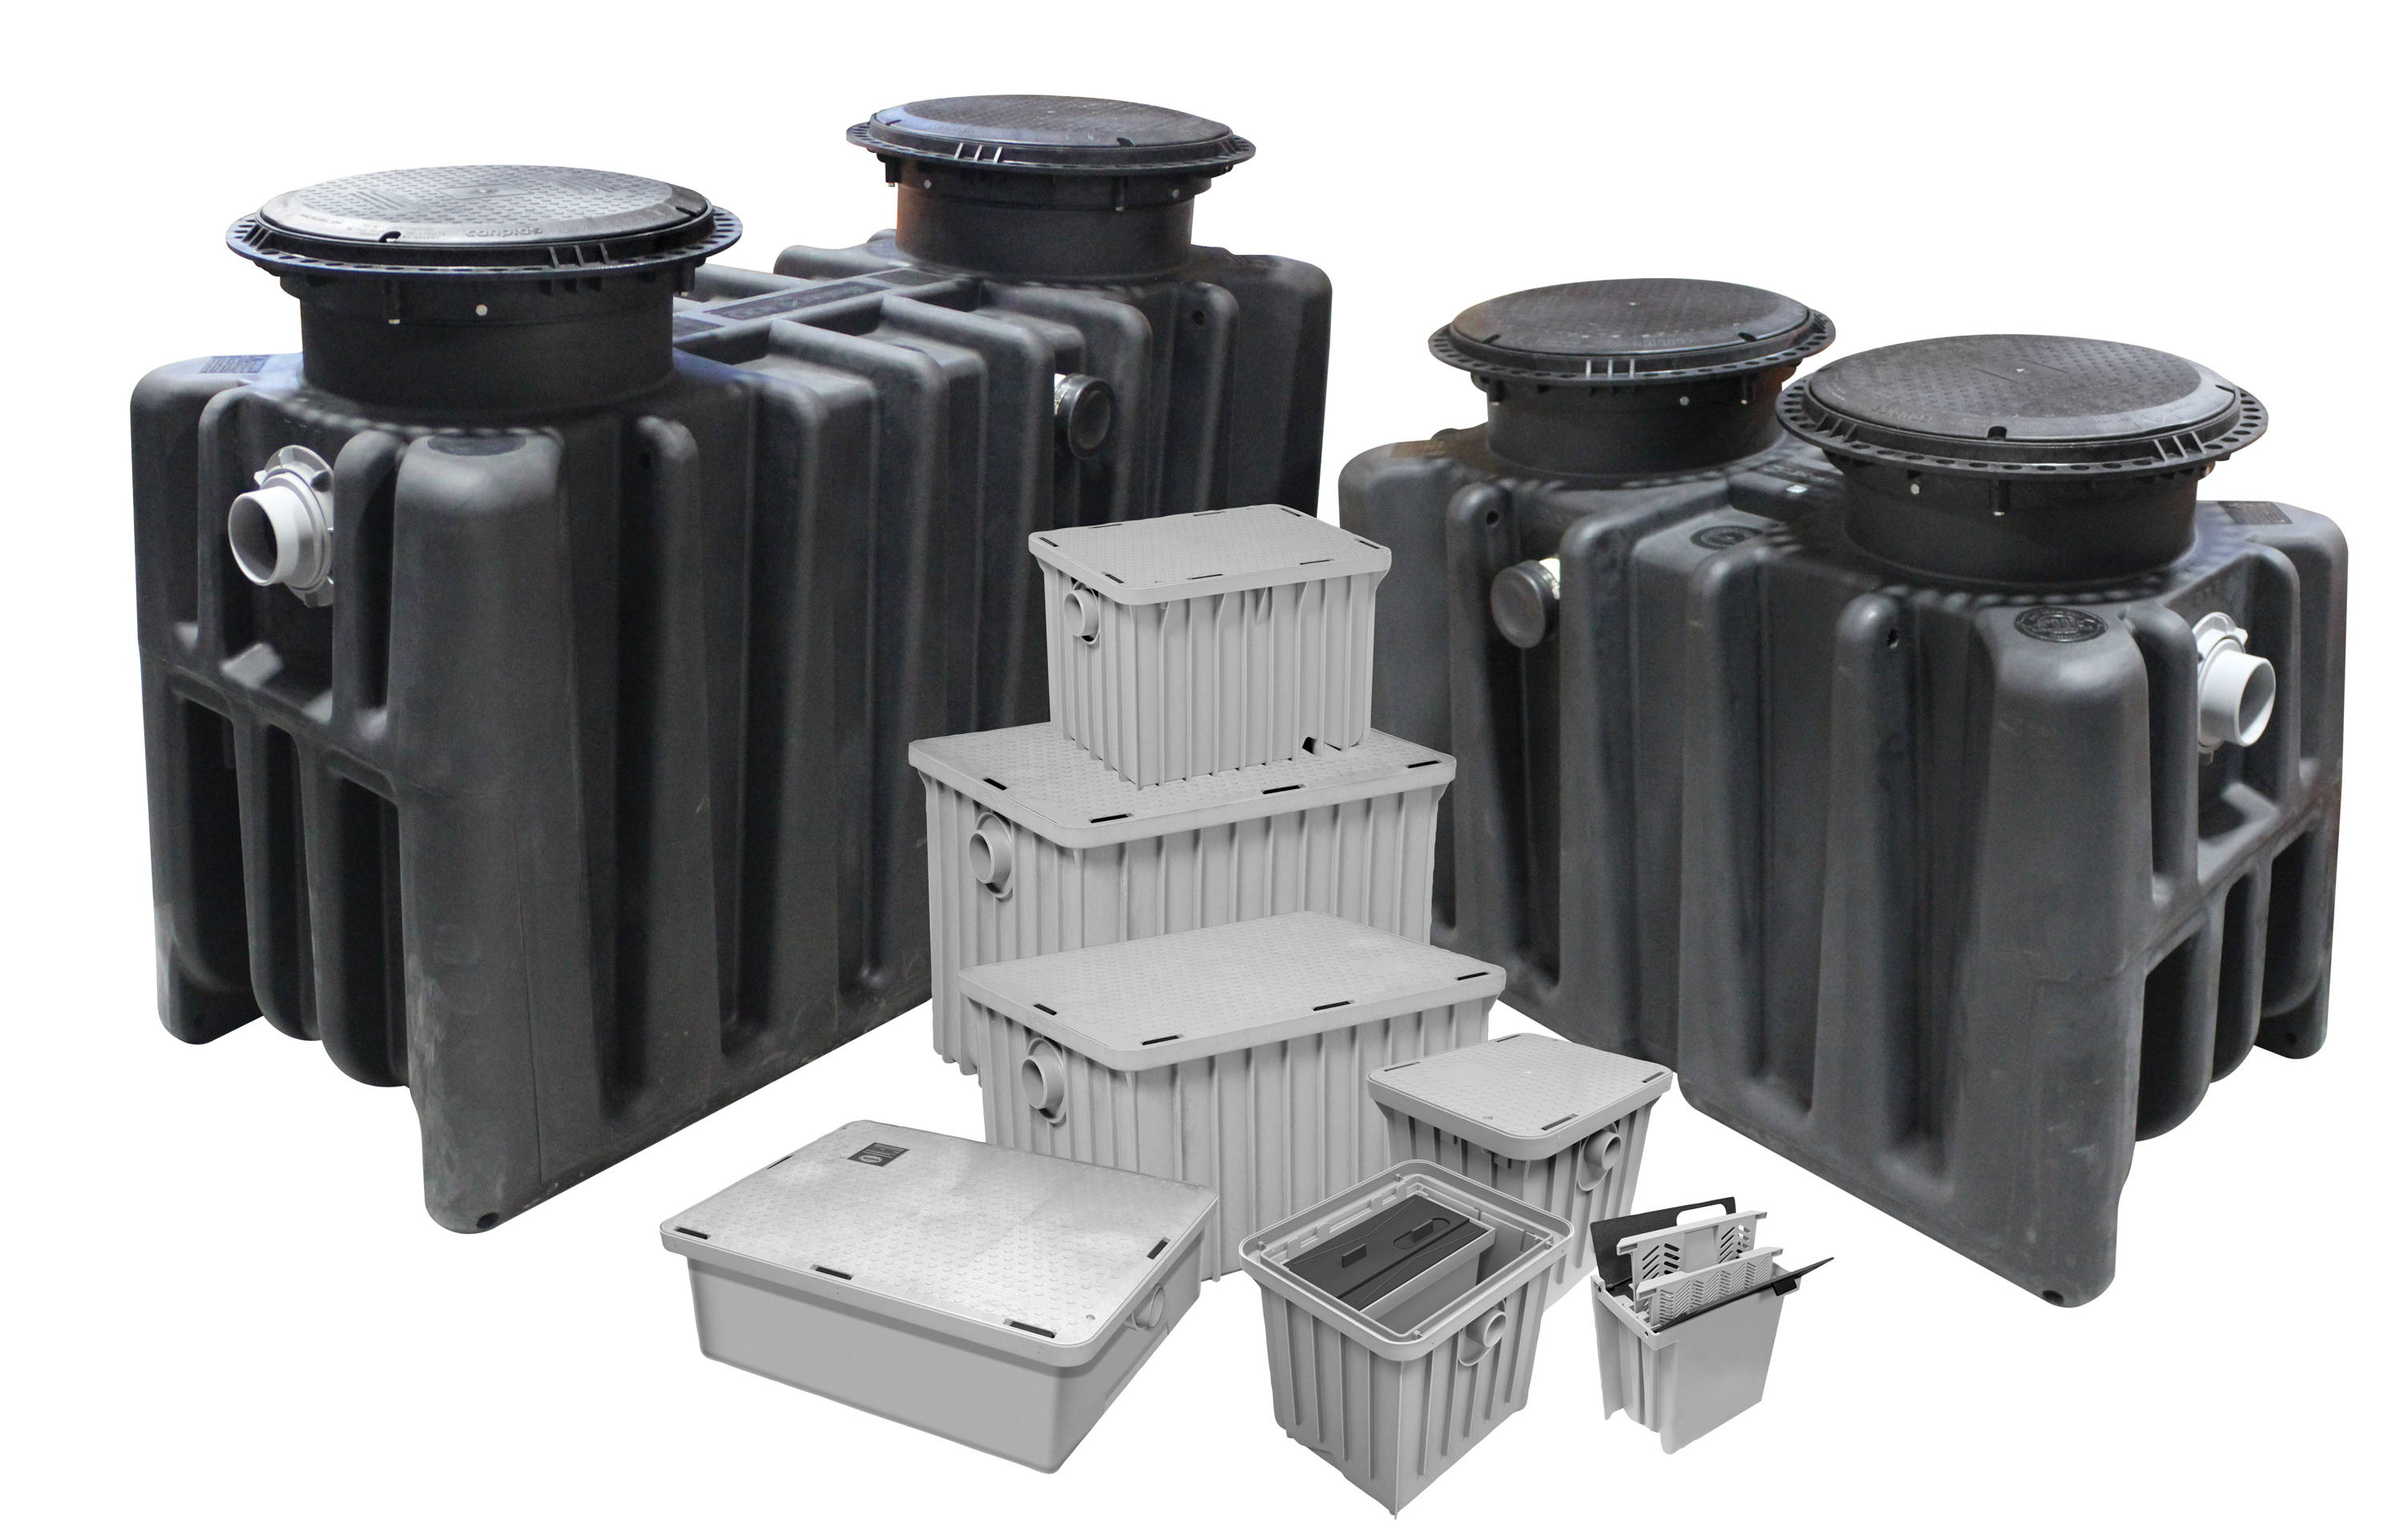 Commercial Grease Traps